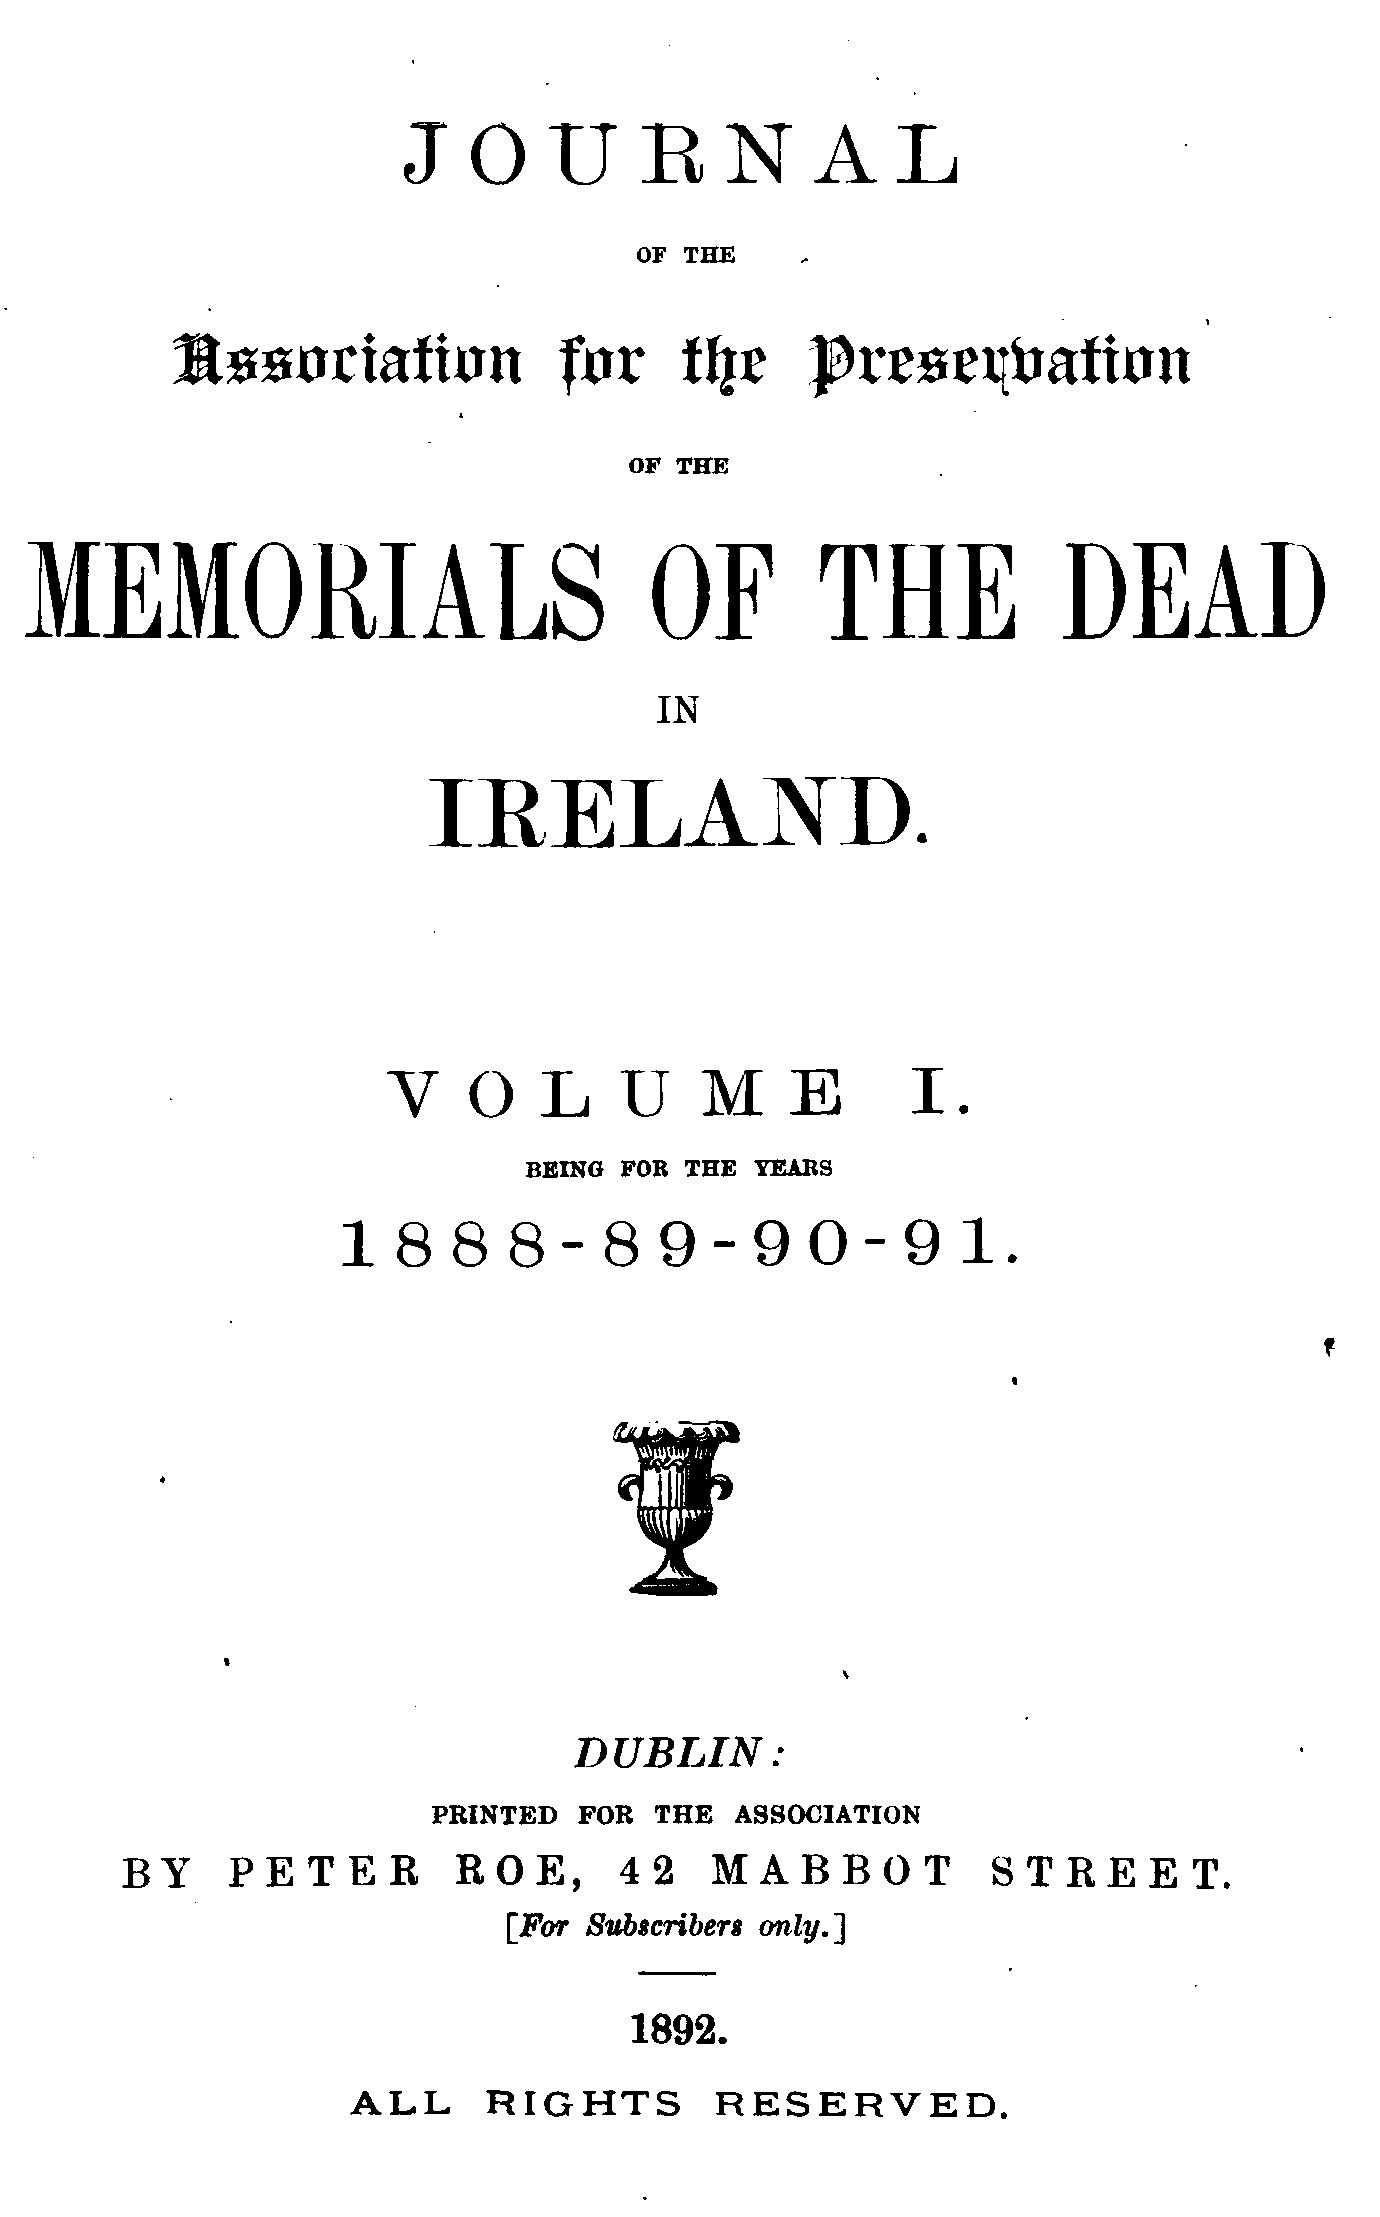 photo of Journal of the Association for the Preservation of the Memorials of the Dead in Ireland. Volume 1 1888-1891, 1892